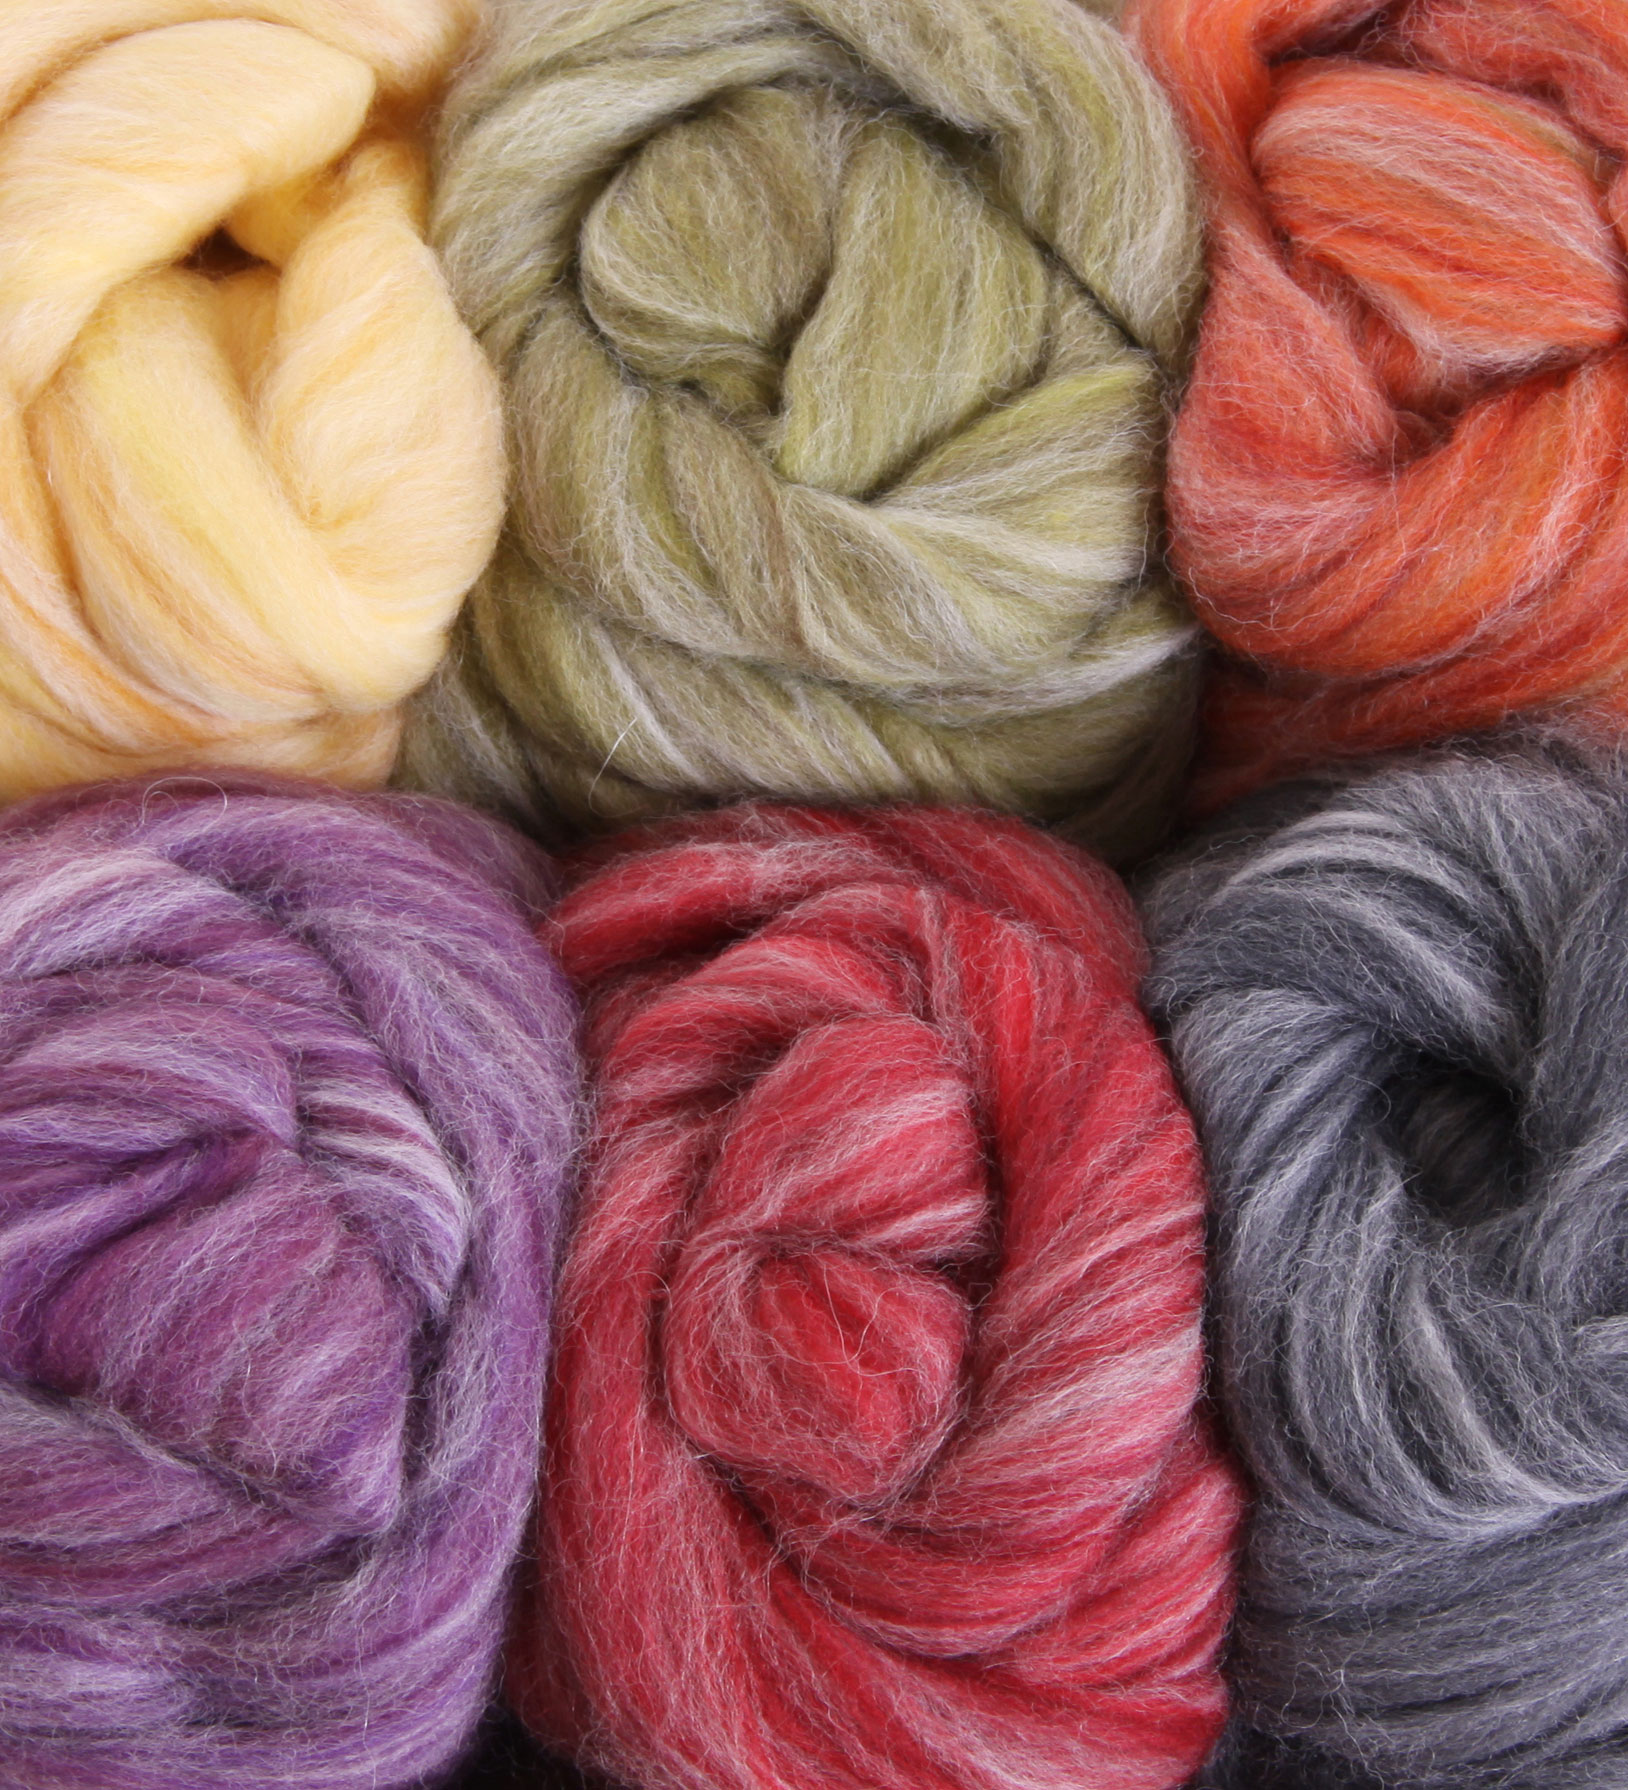 Felting Baby Alpaca Silk Fiber Blend Blending and Other Fiber Crafts Natural White Luxuriously Soft Combed Top Wool Roving for Spinning